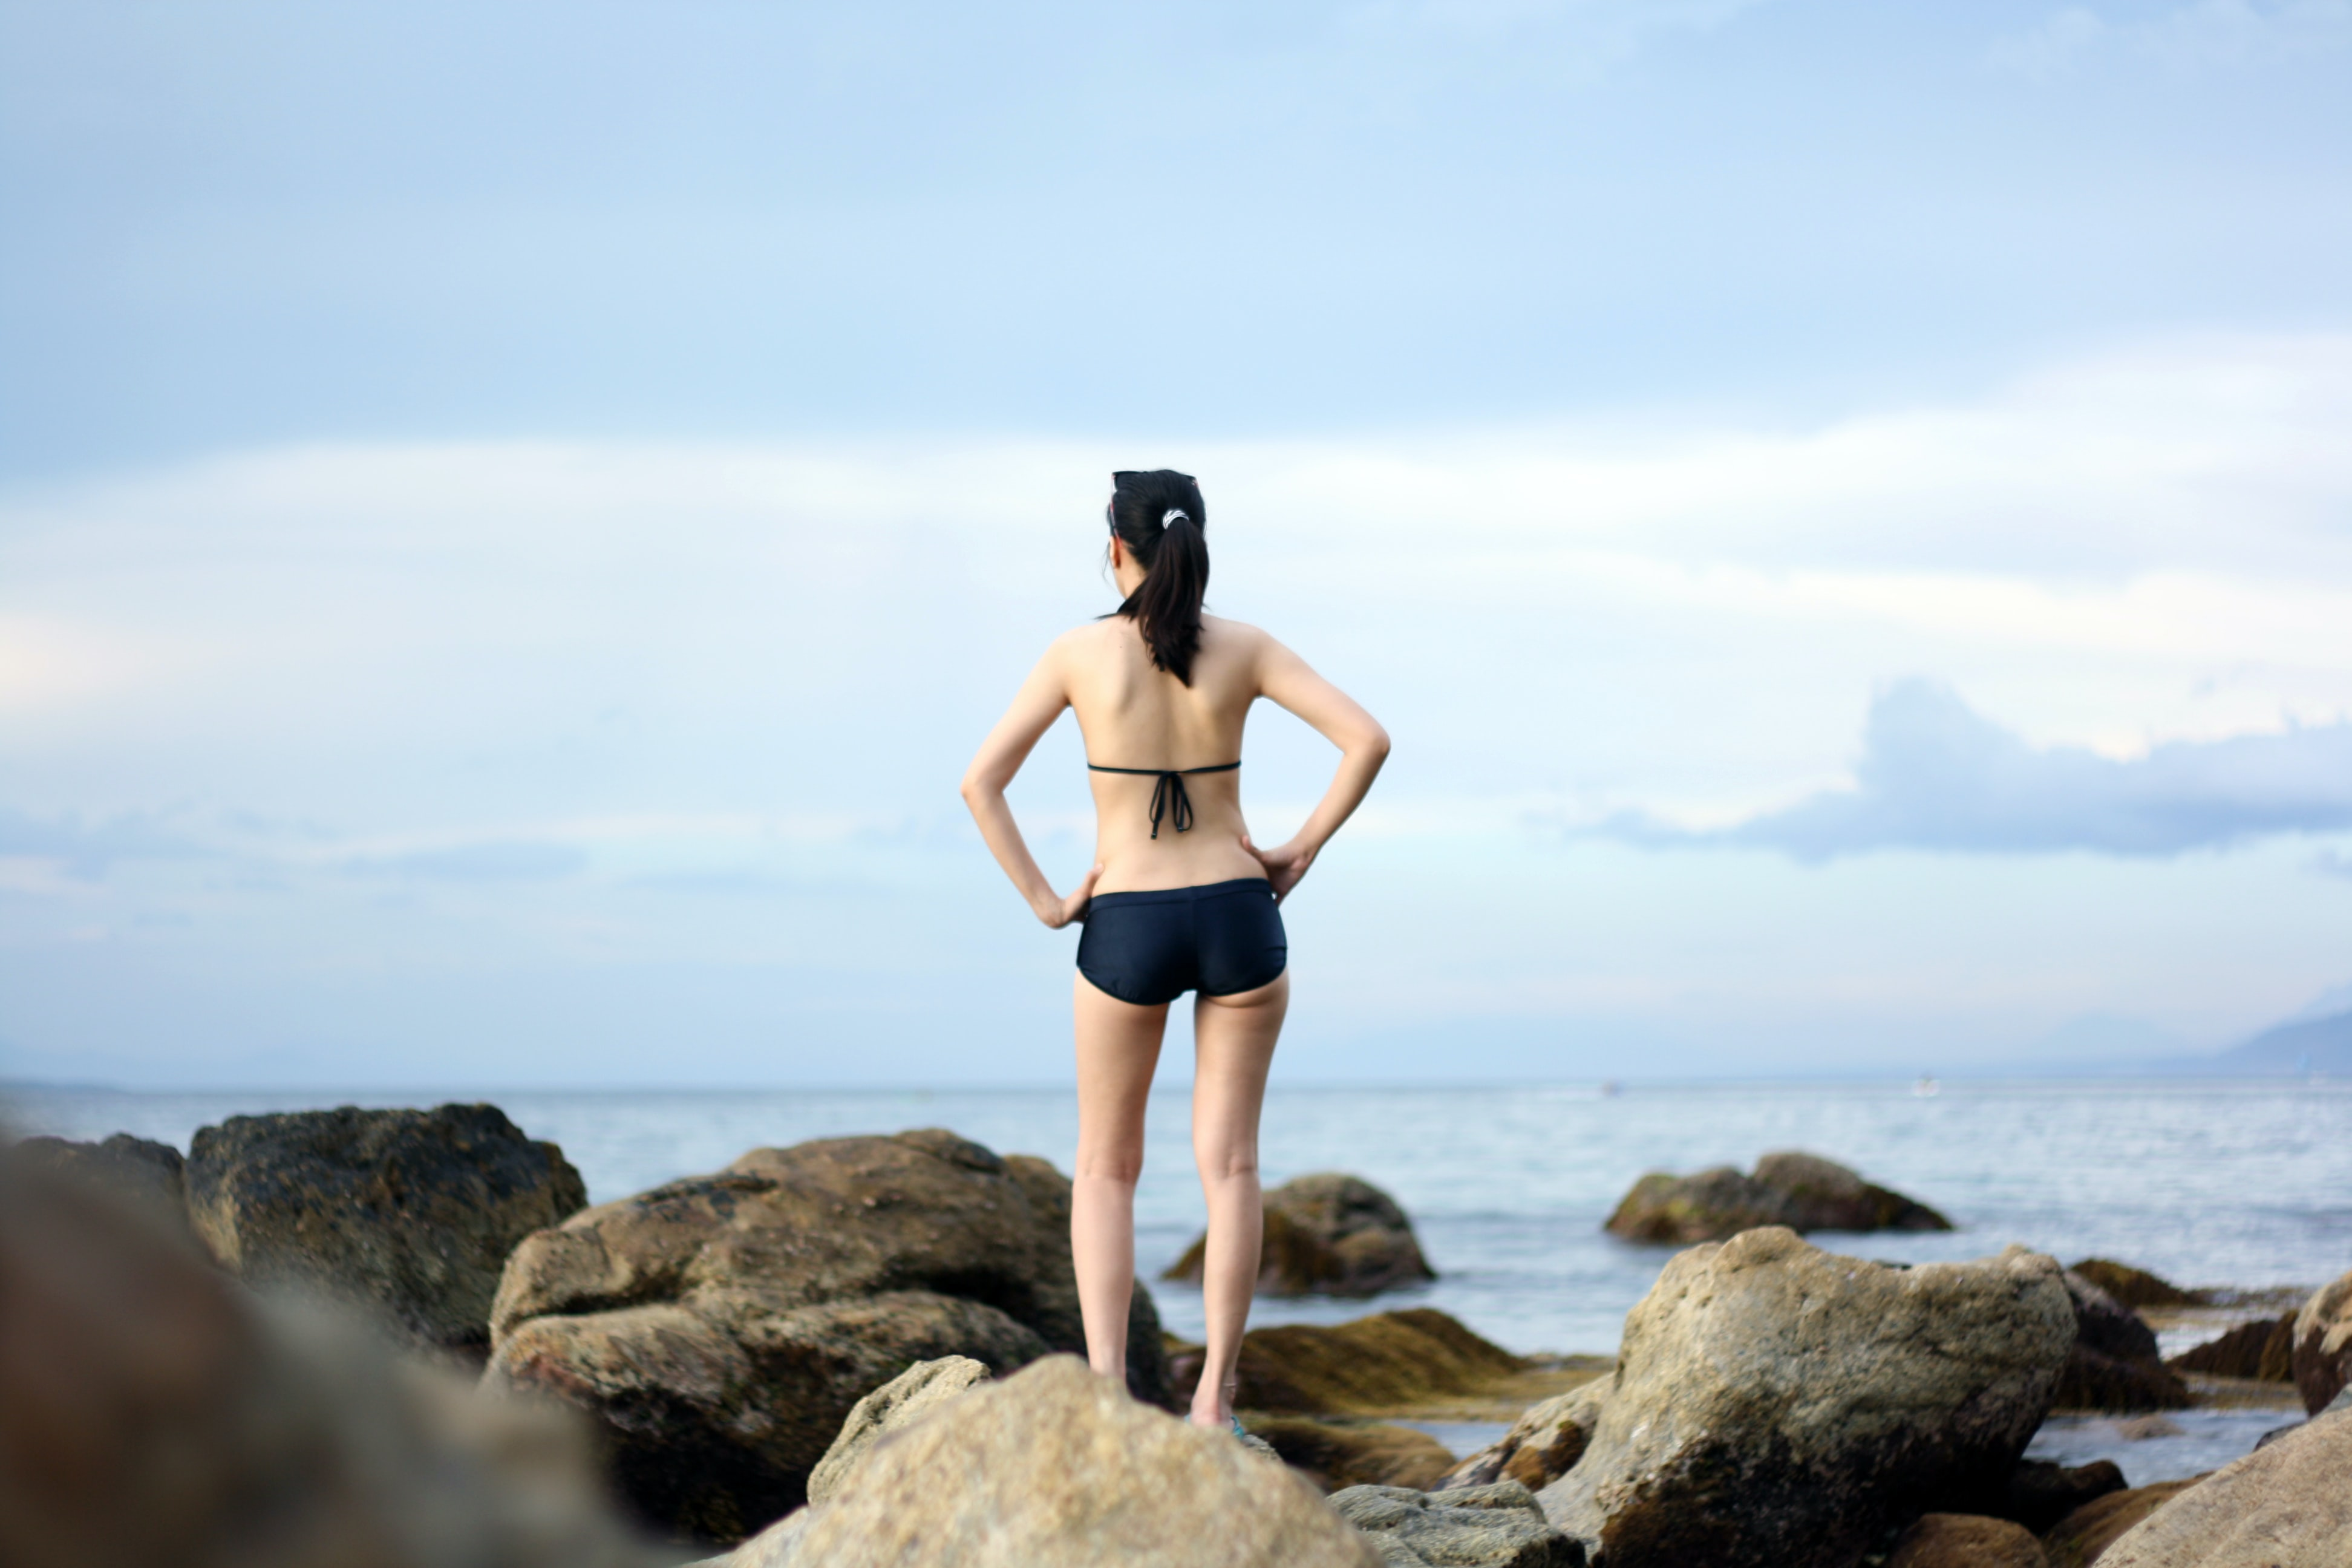 An attractive woman standing on large rocks looking out into the ocean